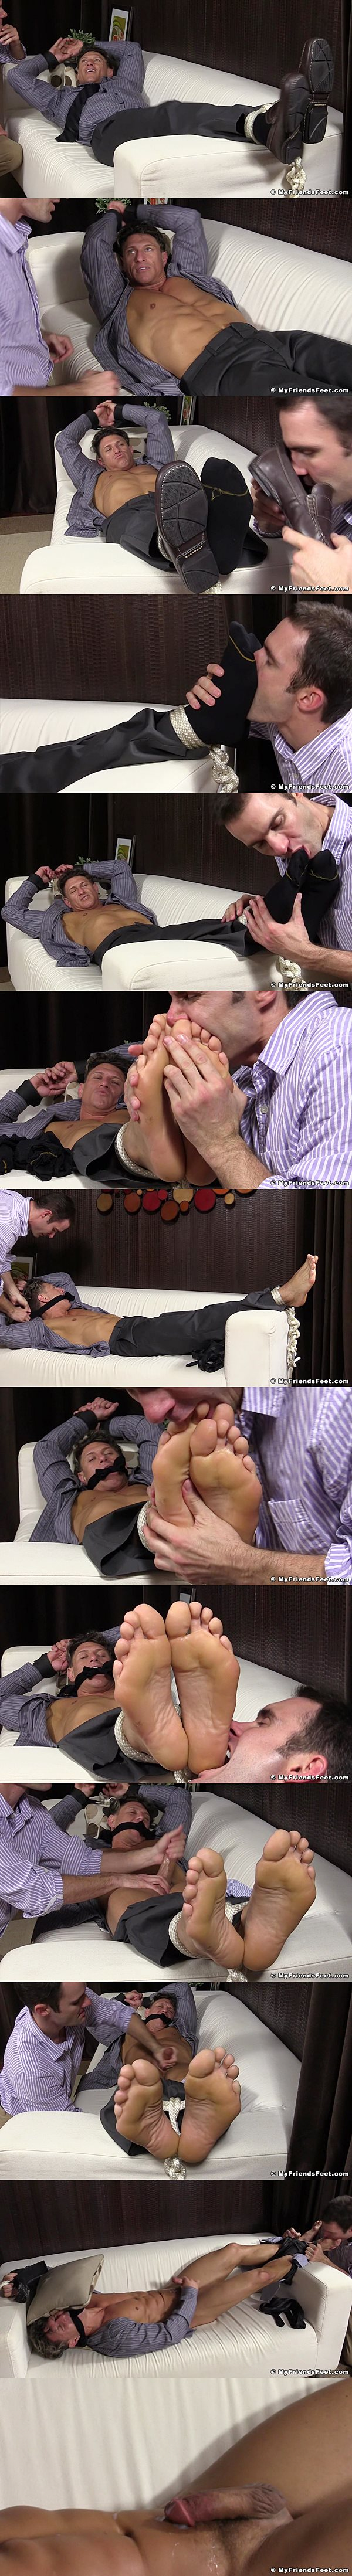 Bryce Evans gets tied up and foot worshiped by Cameron Kincade until Bryce shoots his hot cum at Myfriendsfeet 02